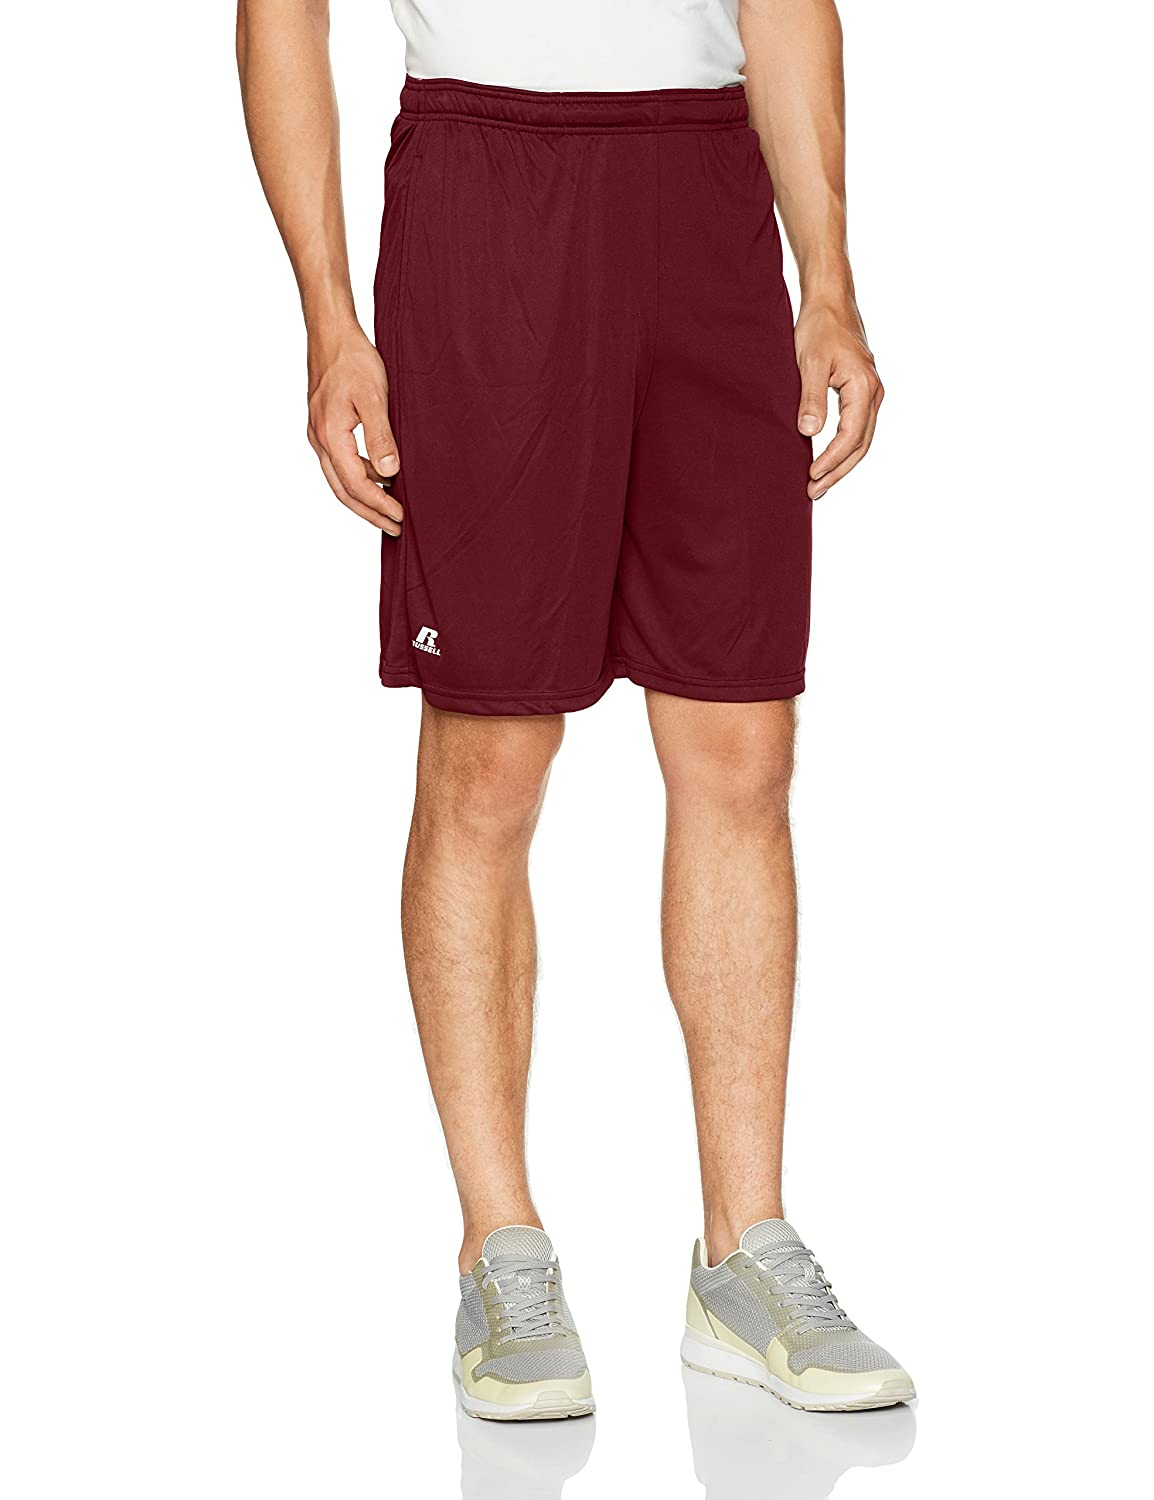 0c8bc1c8b4 Amazon.com: Russell Athletic Dri-Power Performance Short with Pockets:  Clothing